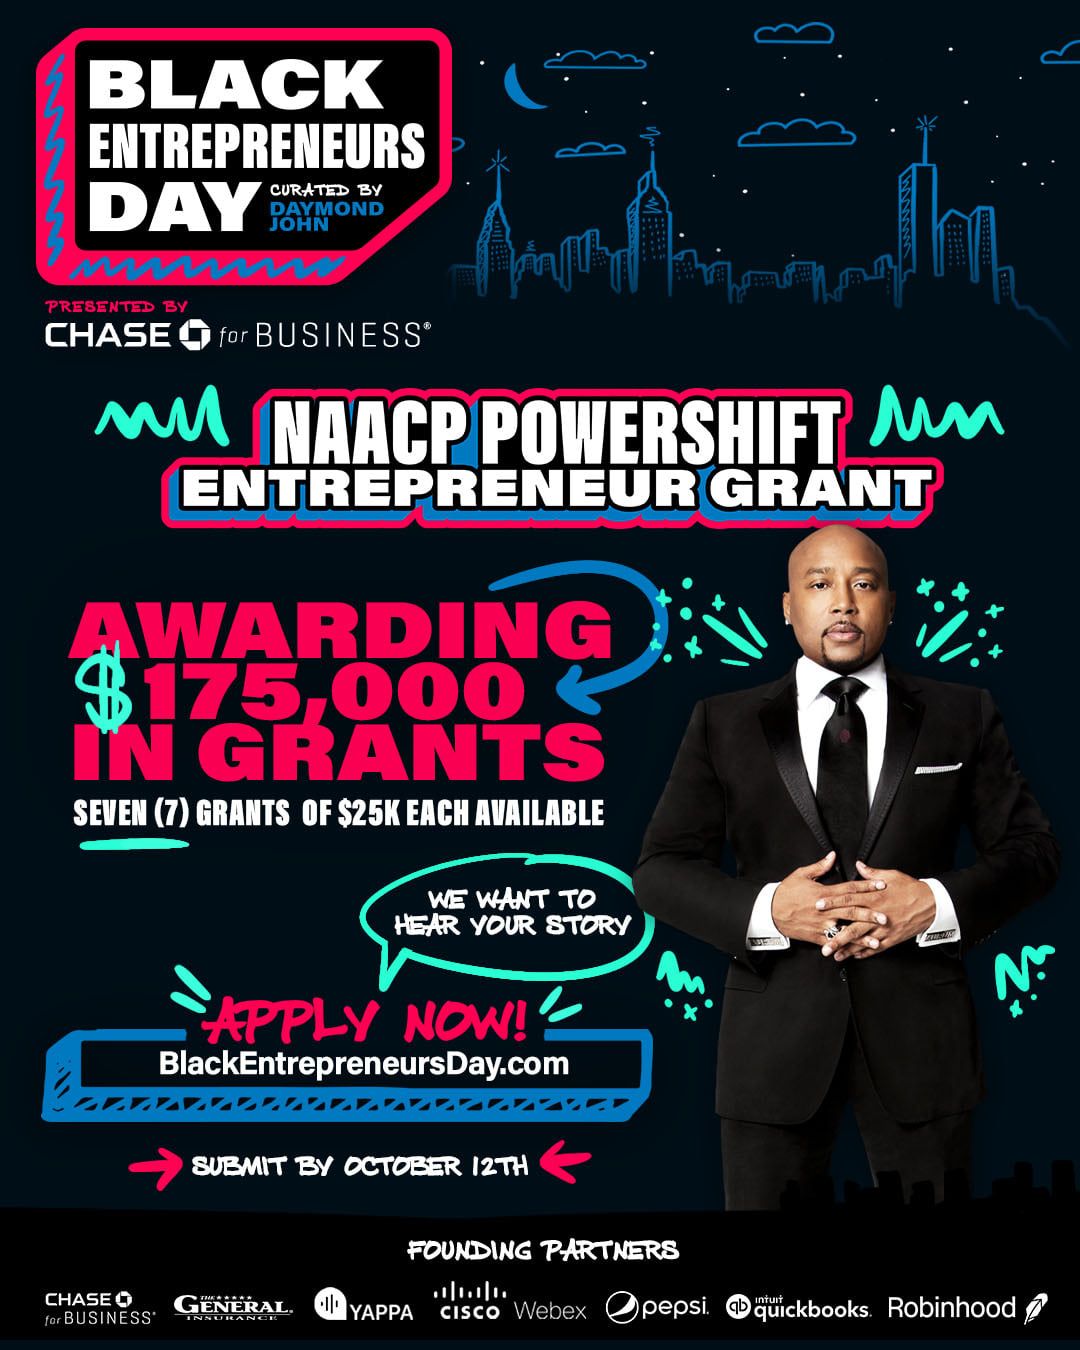 Apply for the NAACP Powershift Entrepreneur Grant